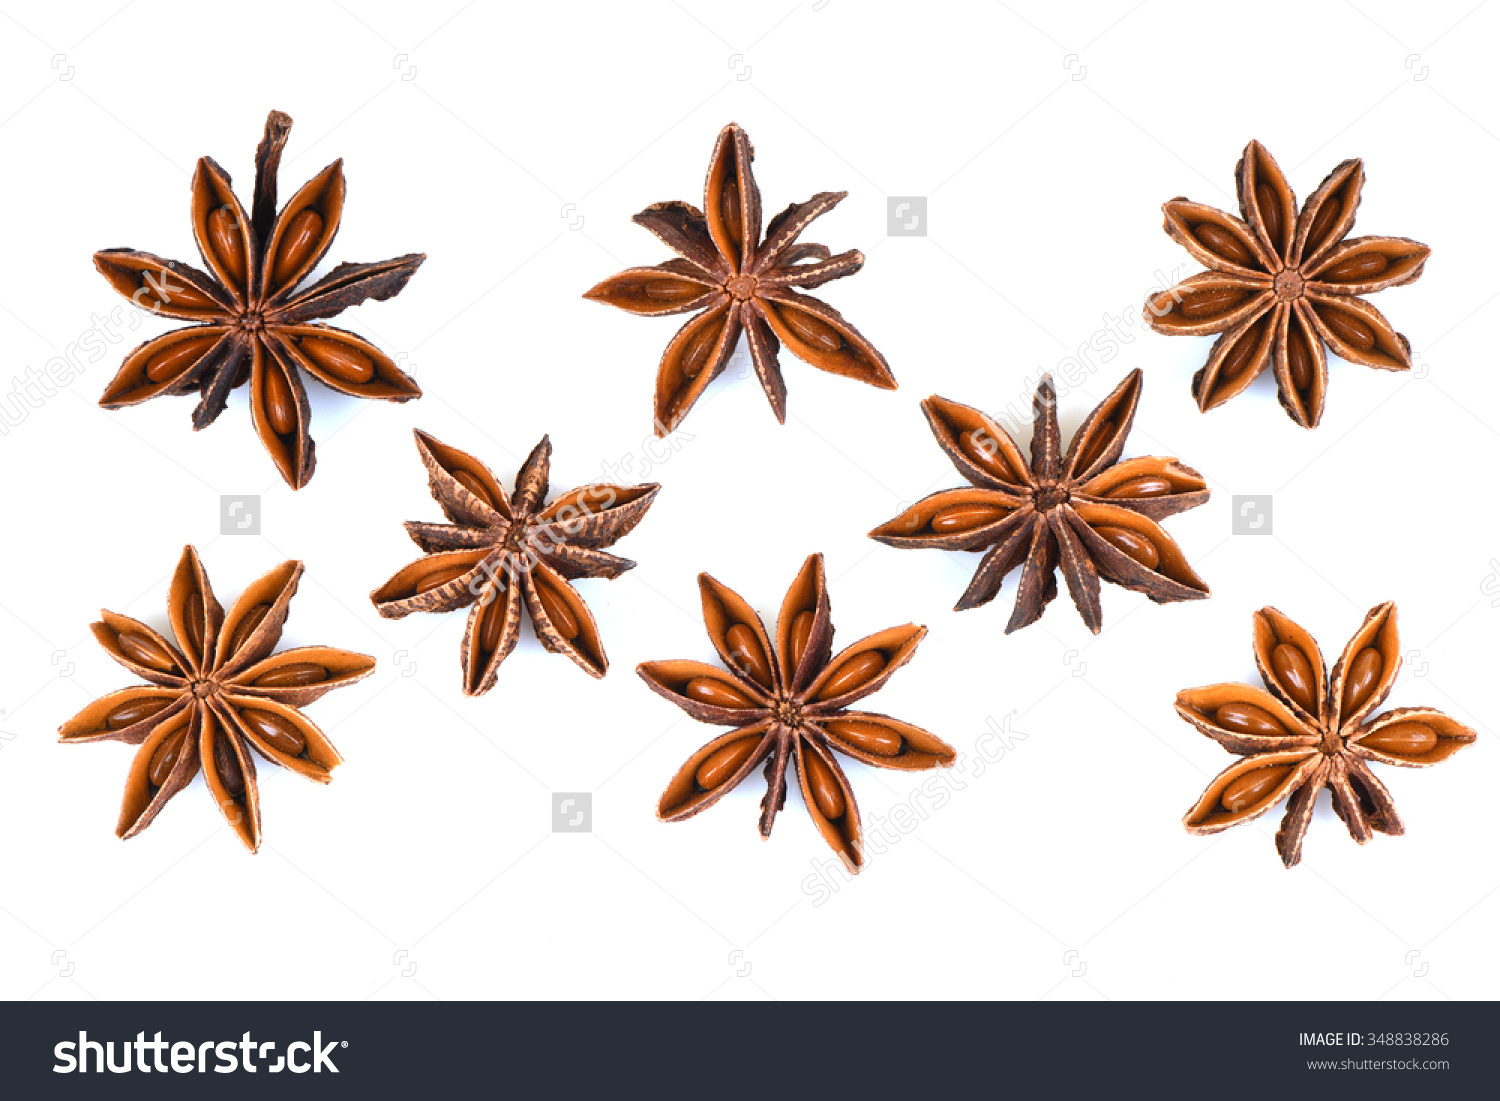 Chinese Star Anise Star Anise Star Stock Photo 348838286.